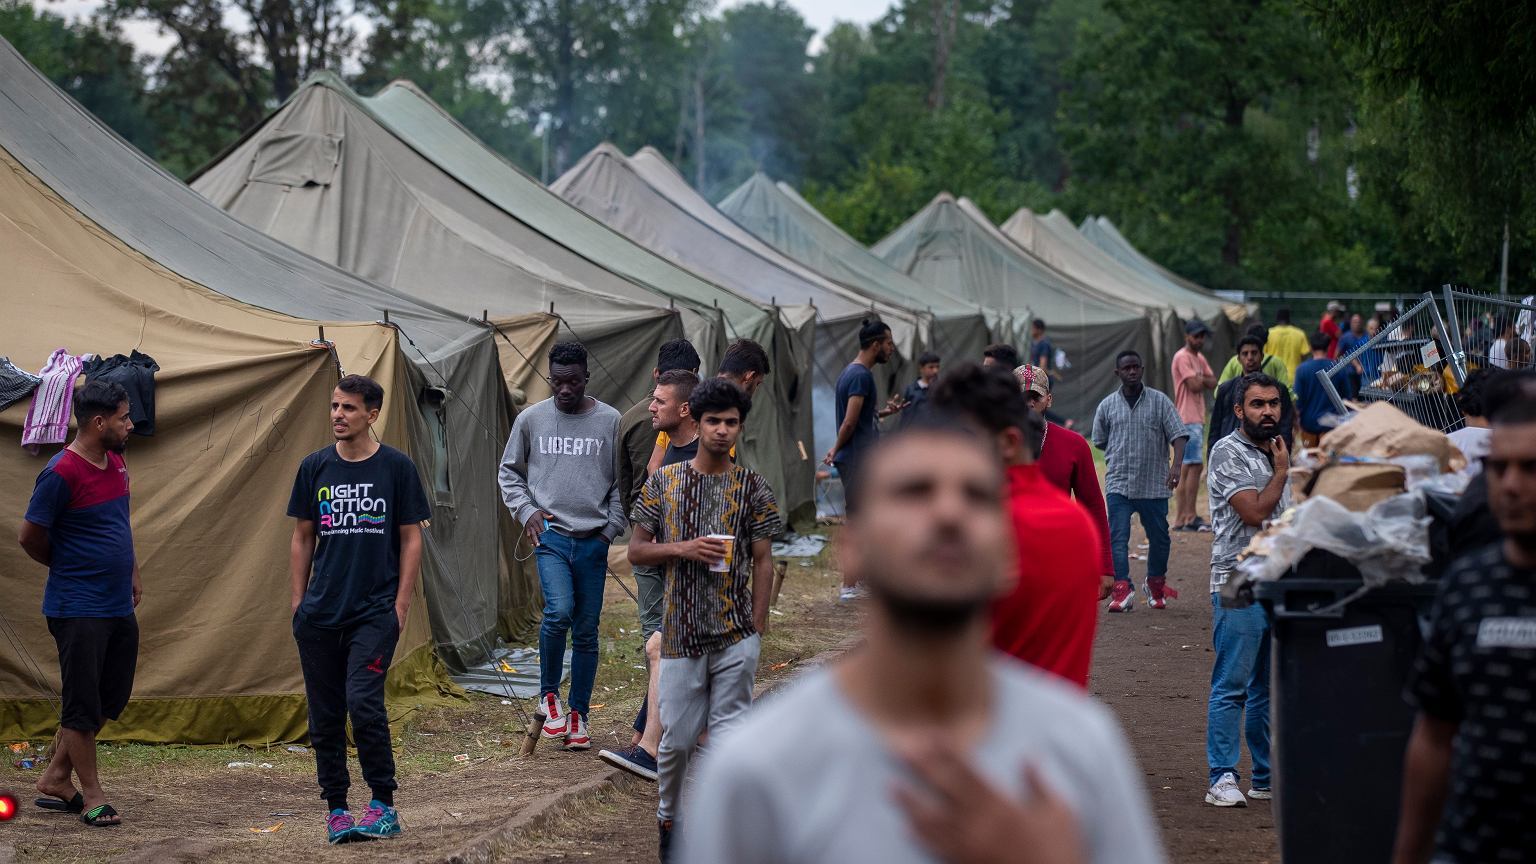 Migrants at the Polish-Belarus border in Osnaz Gornji (August 19, 2021)